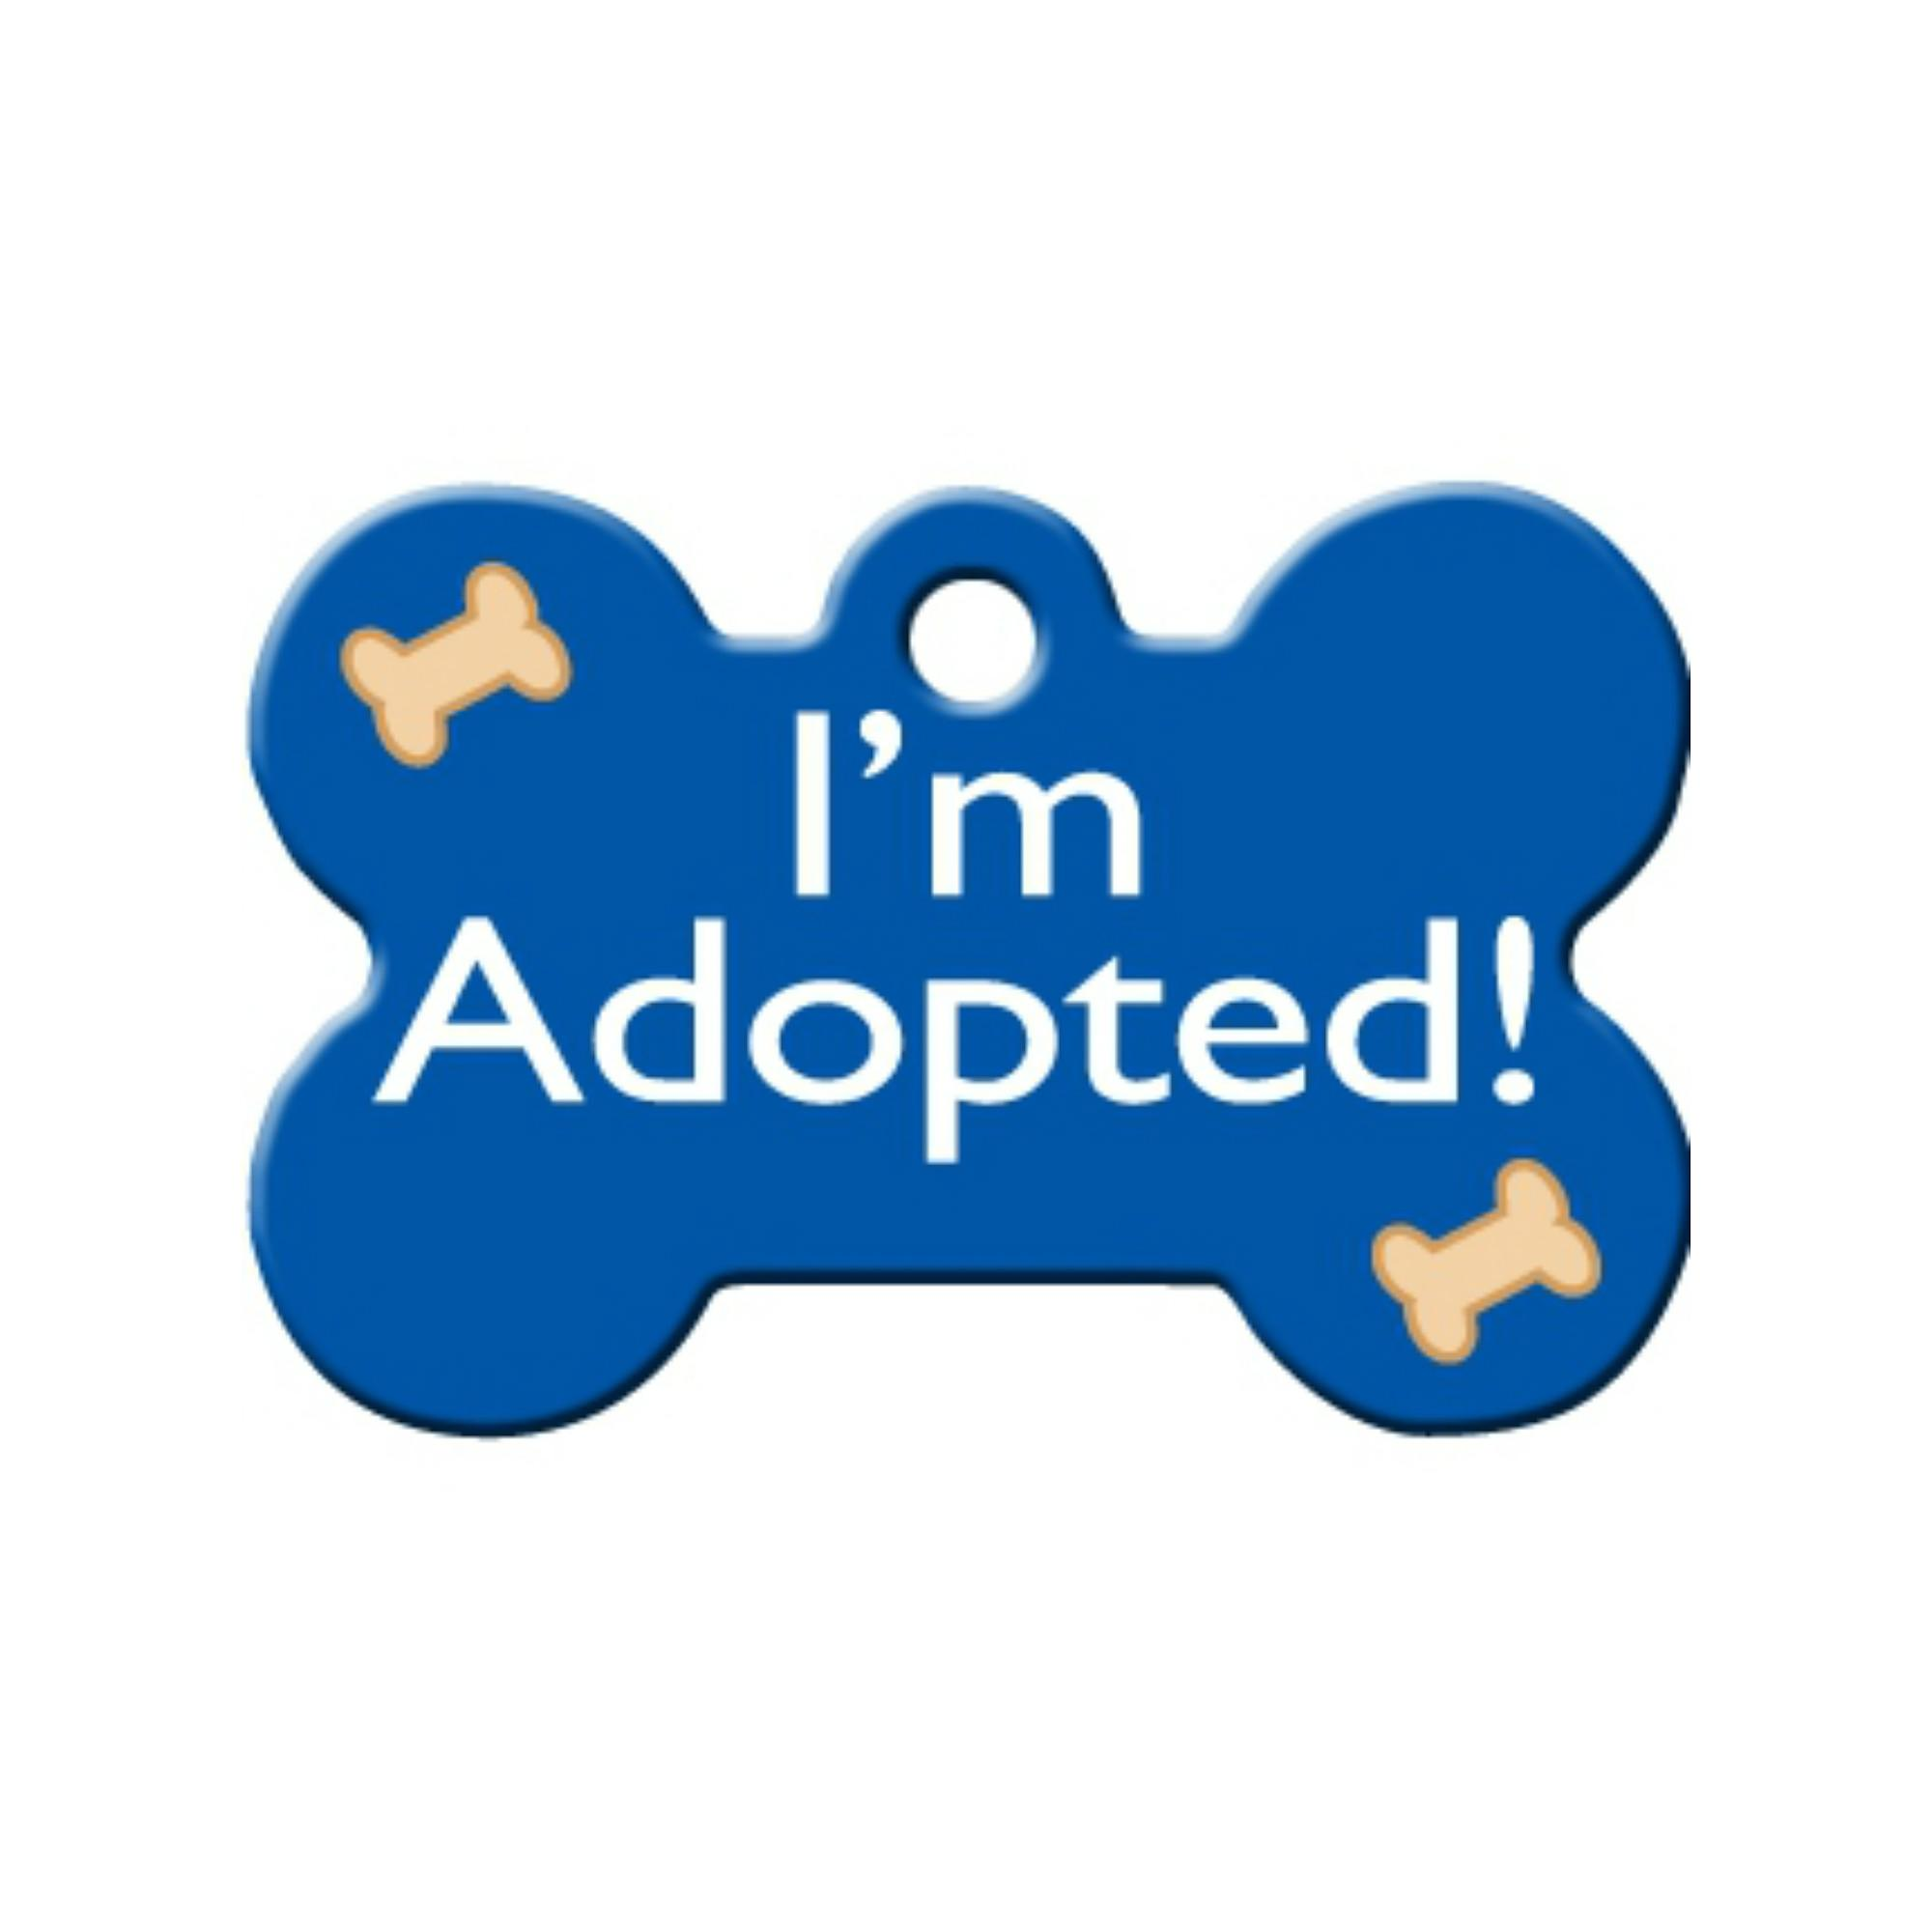 I'm Adopted Bone Large Engravable Pet I.D. Tag - Blue